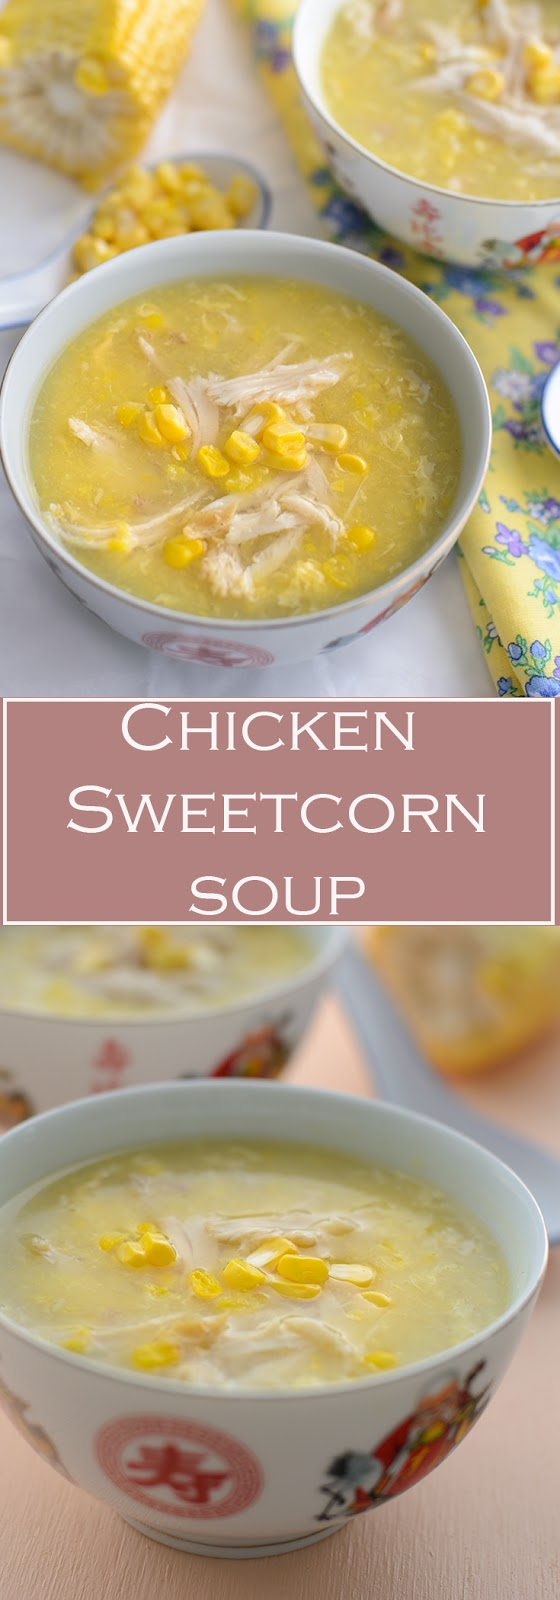 Smooth Silky chicken sweetcorn soup